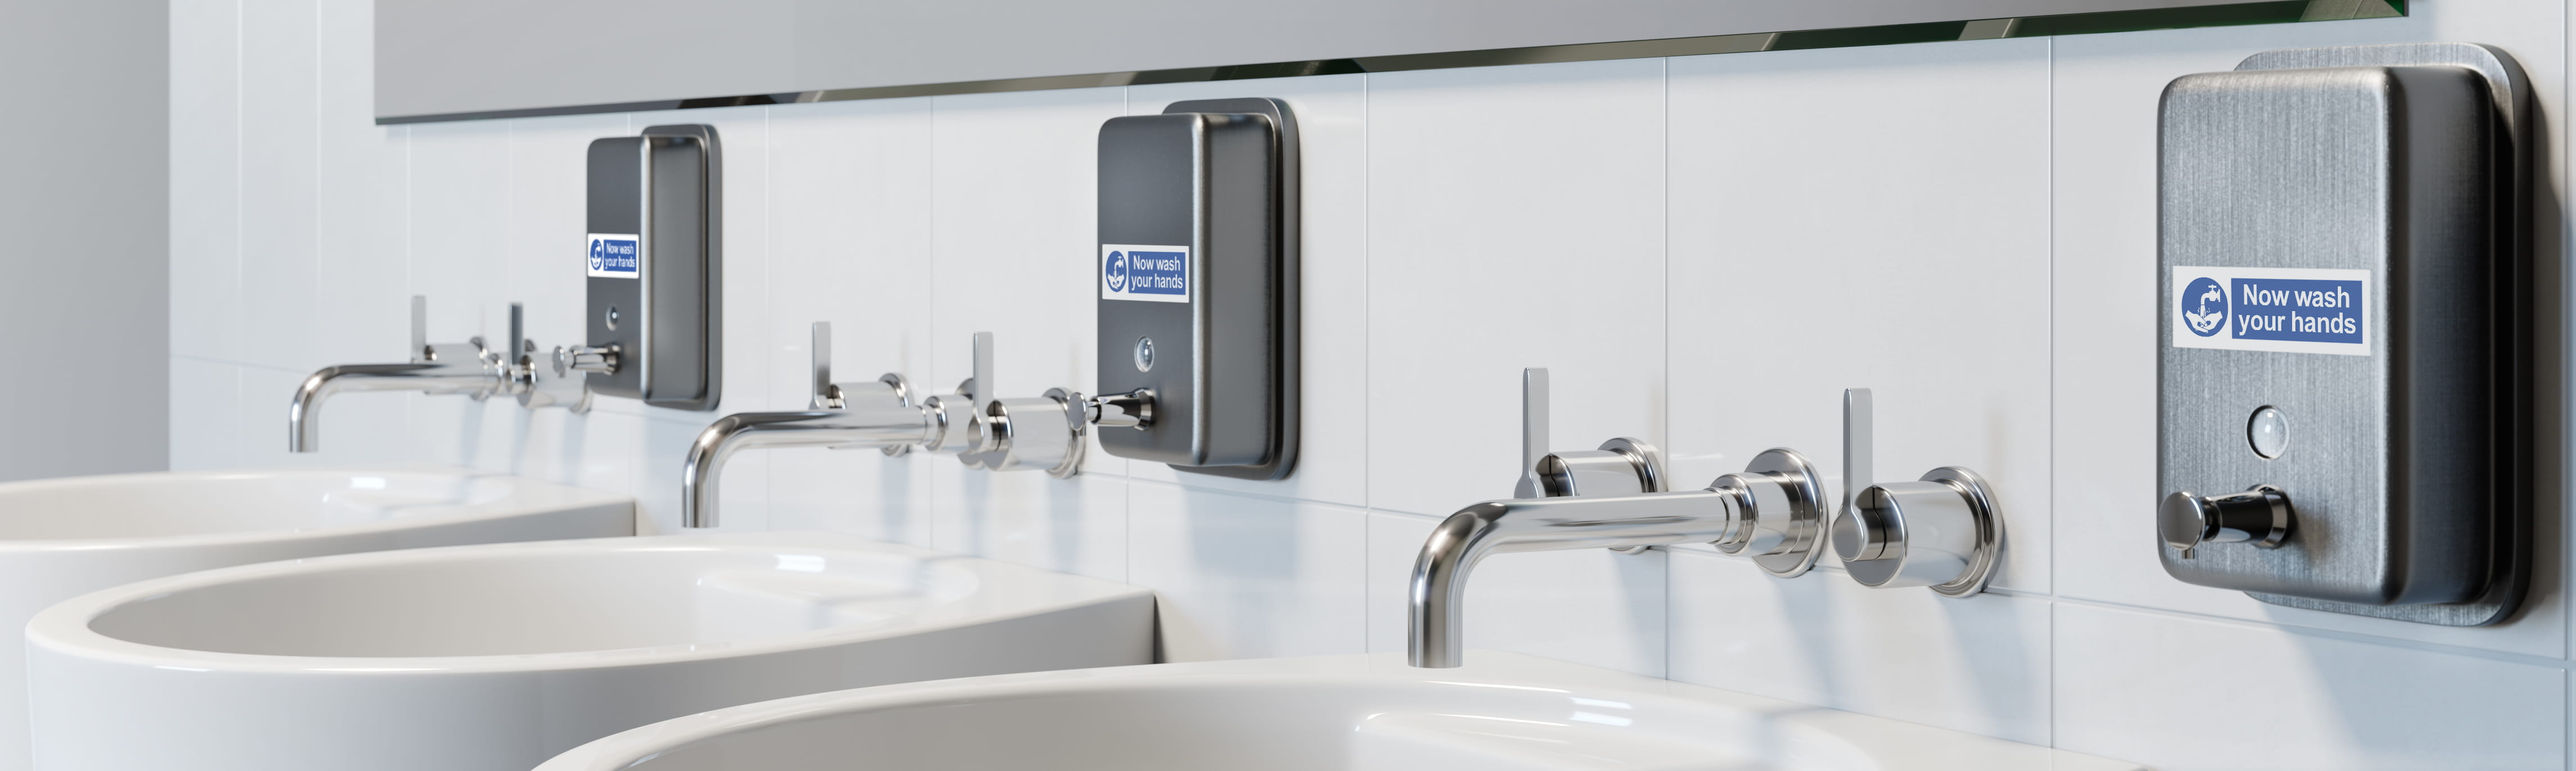 Three basins in bathroom with brother p-touch labels